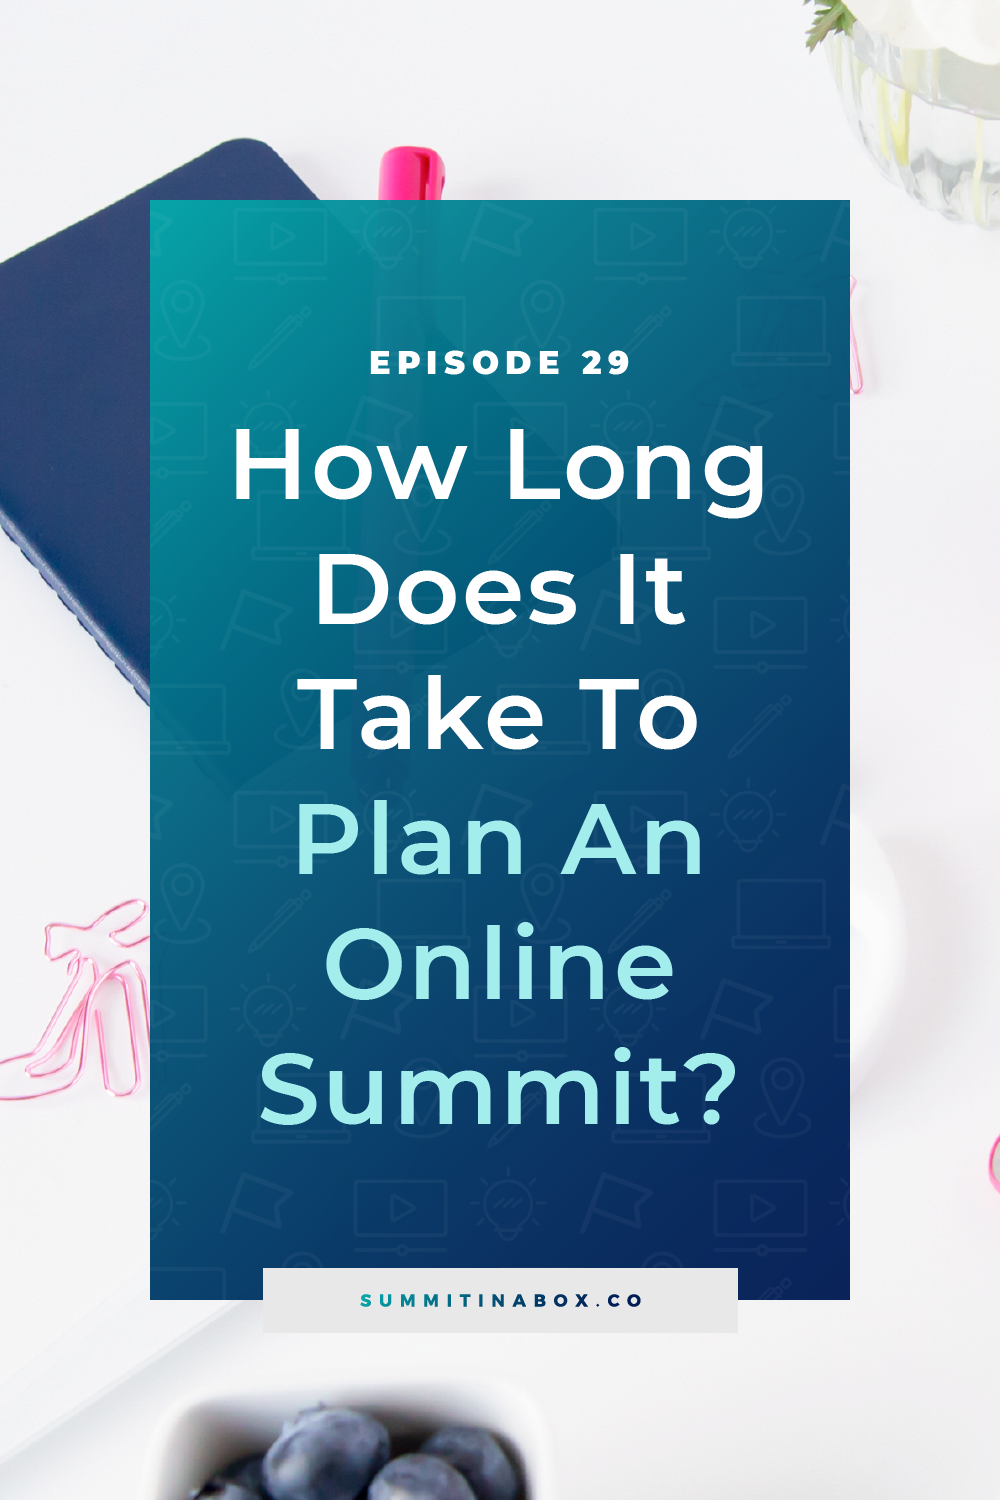 How long does it take to plan a virtual summit? Here is my timeline recommendation along with the big picture tasks you'll want to complete along the way.